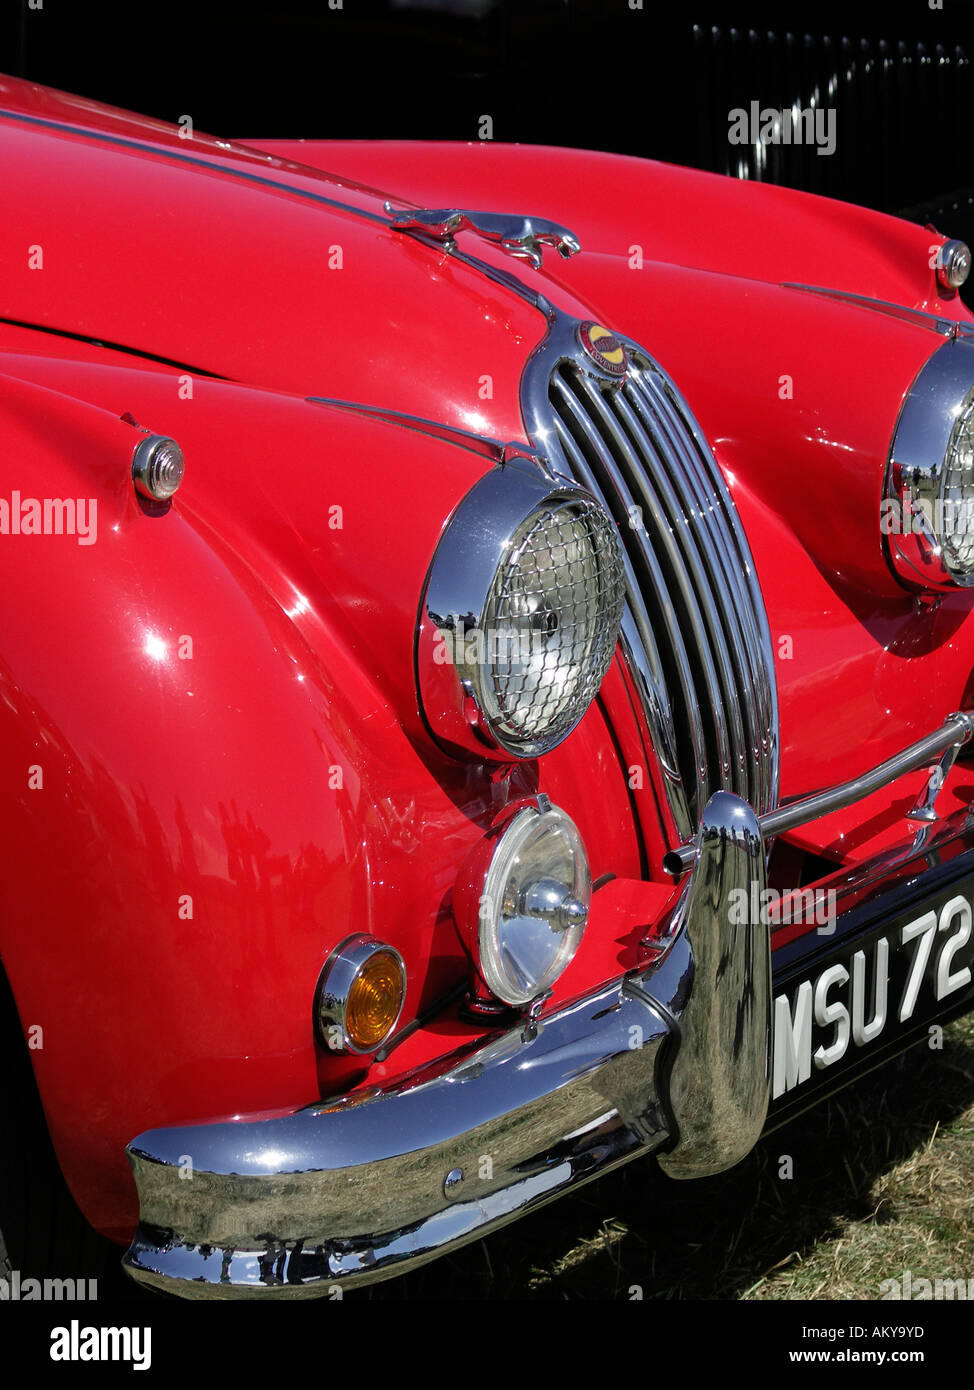 Front bonnet grill and headlights of a classic Jaguar XK 140 in bright red with jaguar hood ornament - Stock Image